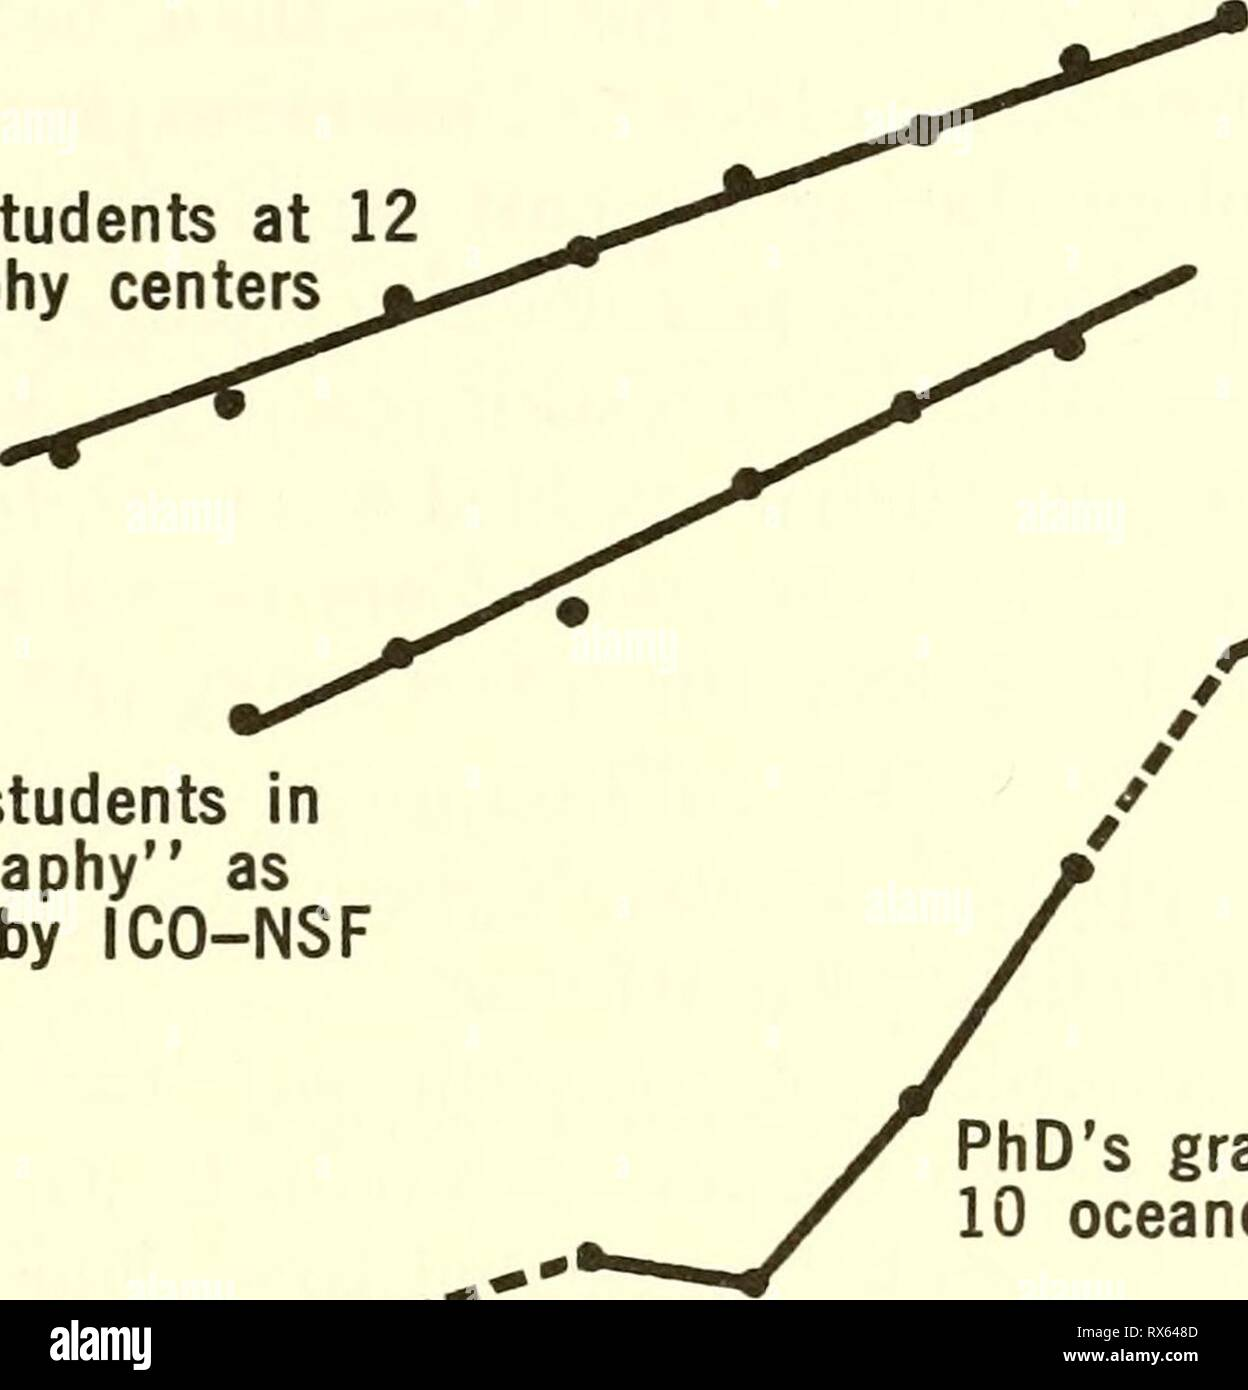 Effective use of the sea; Effective use of the sea; report effectiveuseofse00unit Year: 1966  of Ph. D.'s by 1970 will be of the same order as the total produced in the last two decades. We conclude that the rapid increase of Federal support to oceanography in the period 1958-63 has had a profound influence on the number of professionally trained oceanographers. This rapid increase, if accompanied by a continuation of the present budget, can only lead to major problems some 2 to 4 years hence. 1000 r a SI O- o UJ o 3 UJ 100 10 Graduate students at 12 oceanography centers   n^ Graduate students Stock Photo